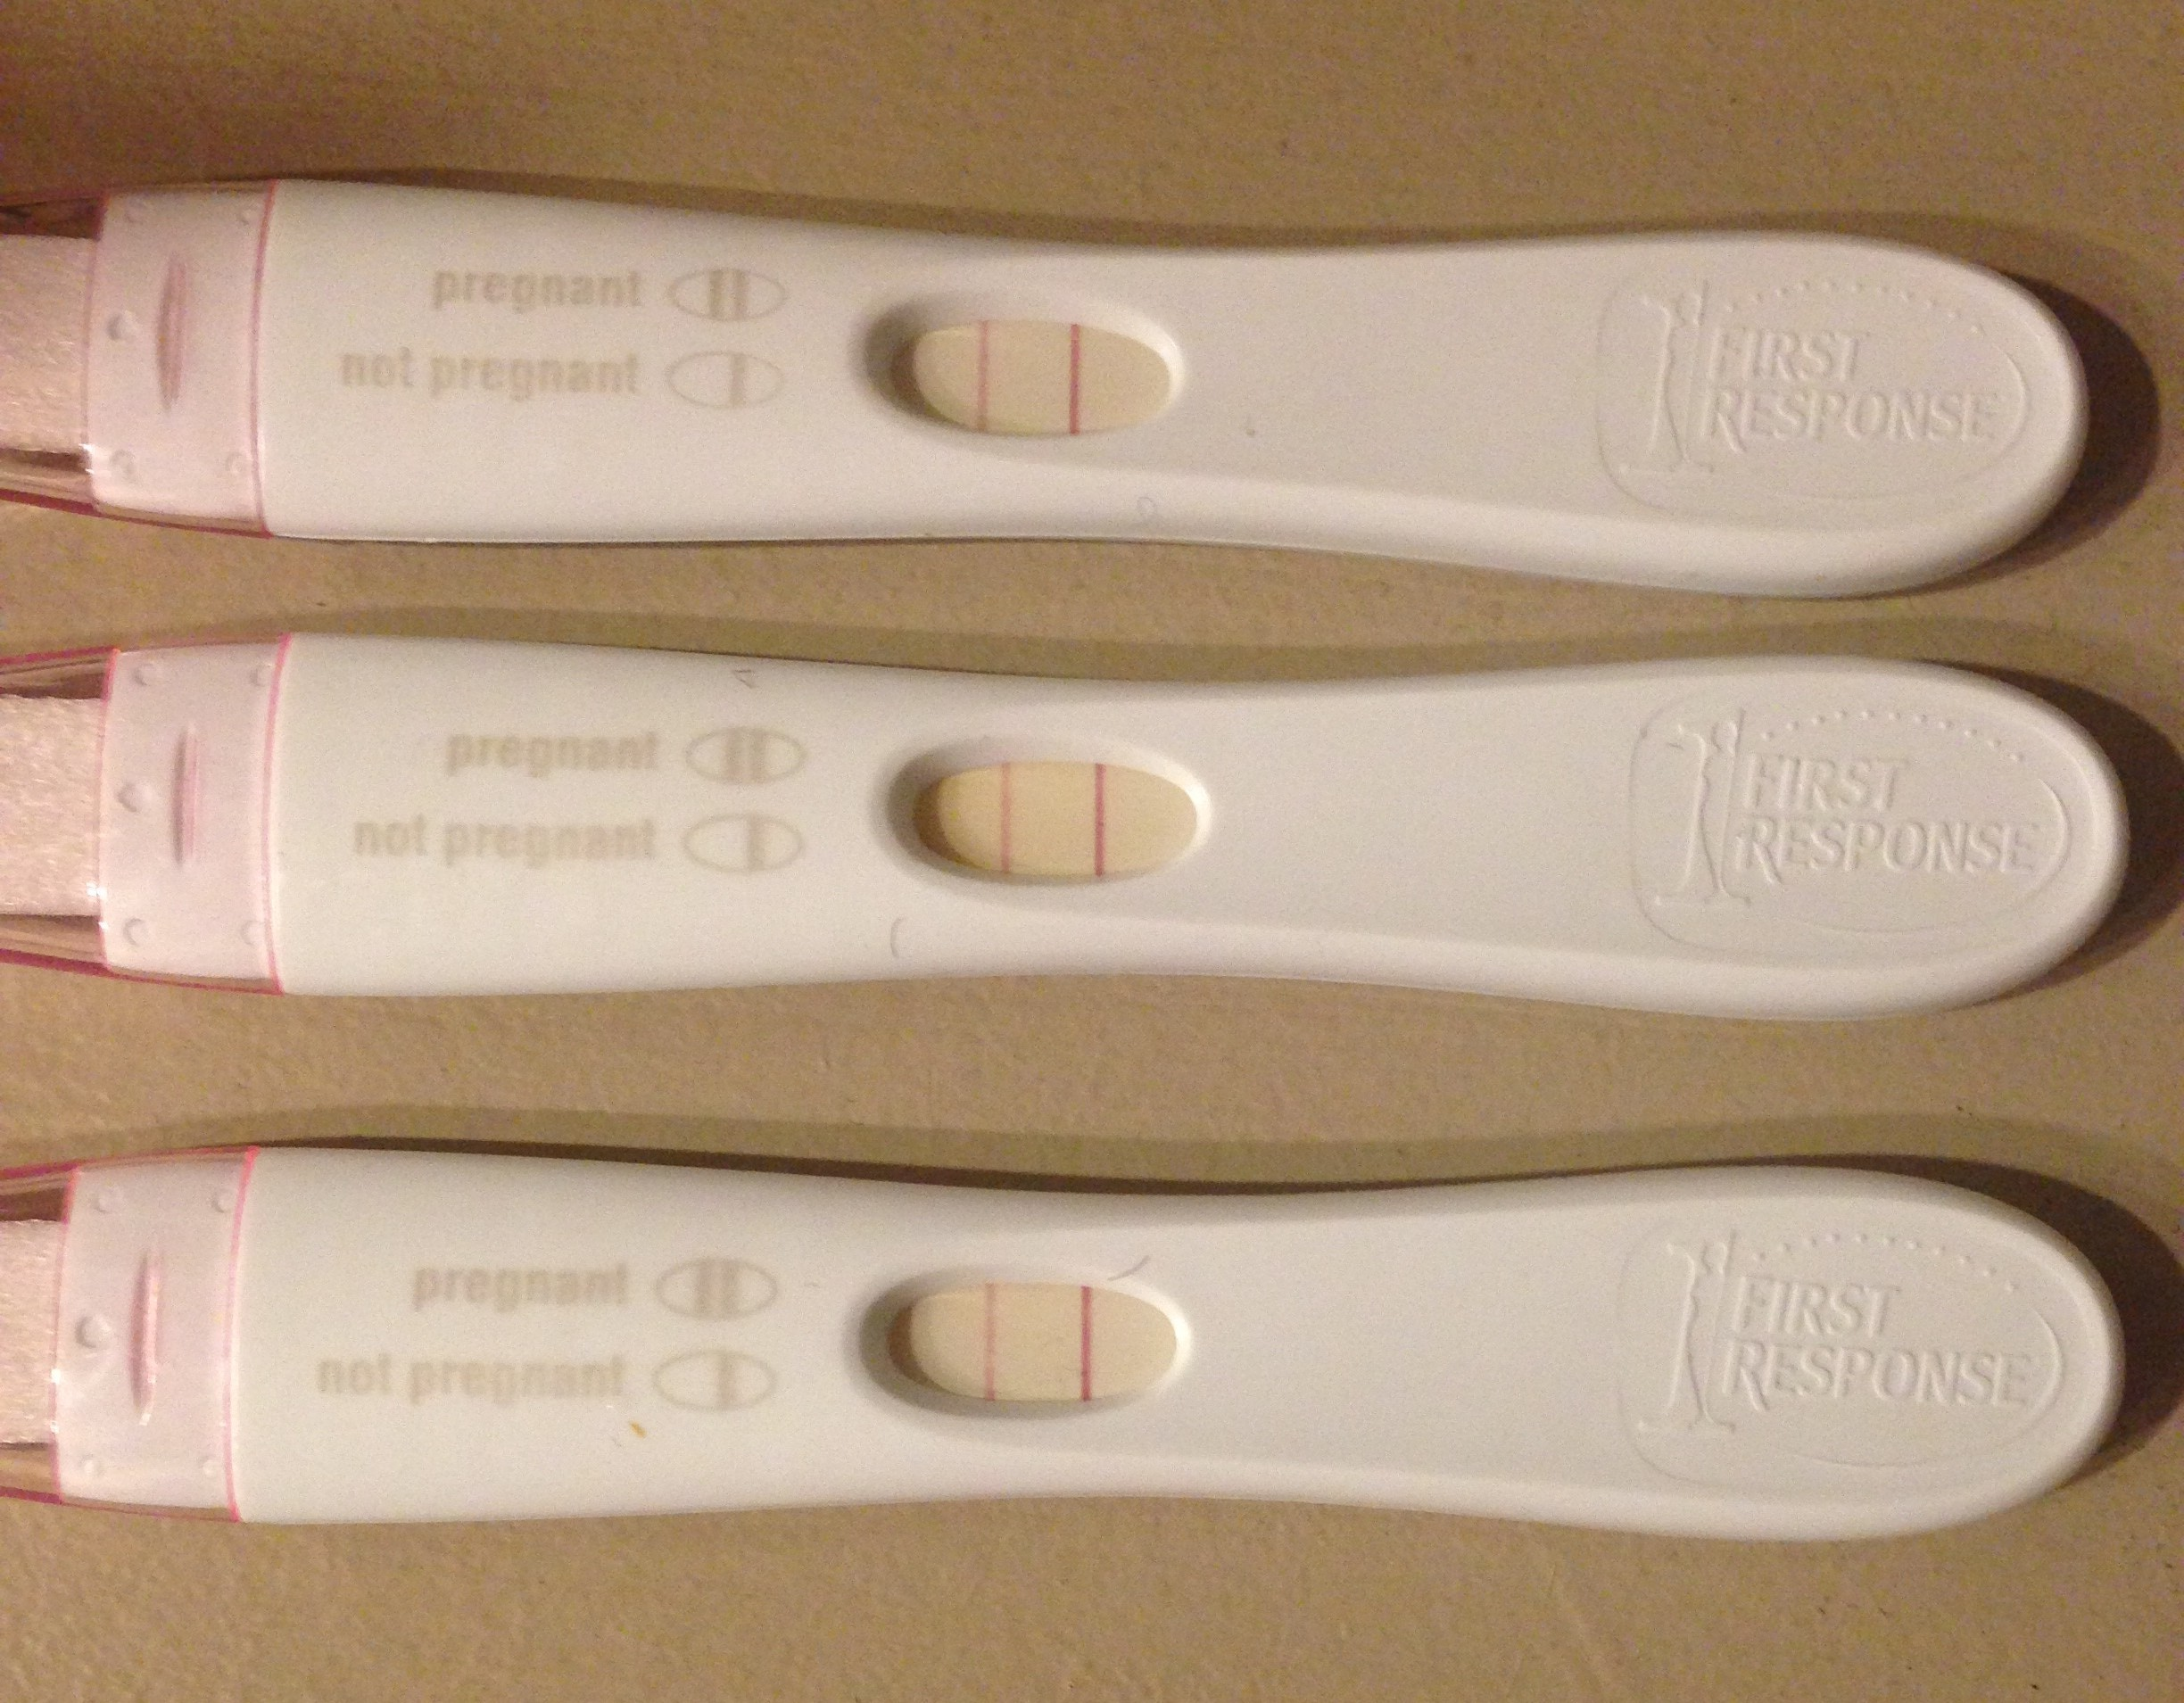 3 positive pregnancy tests in a row